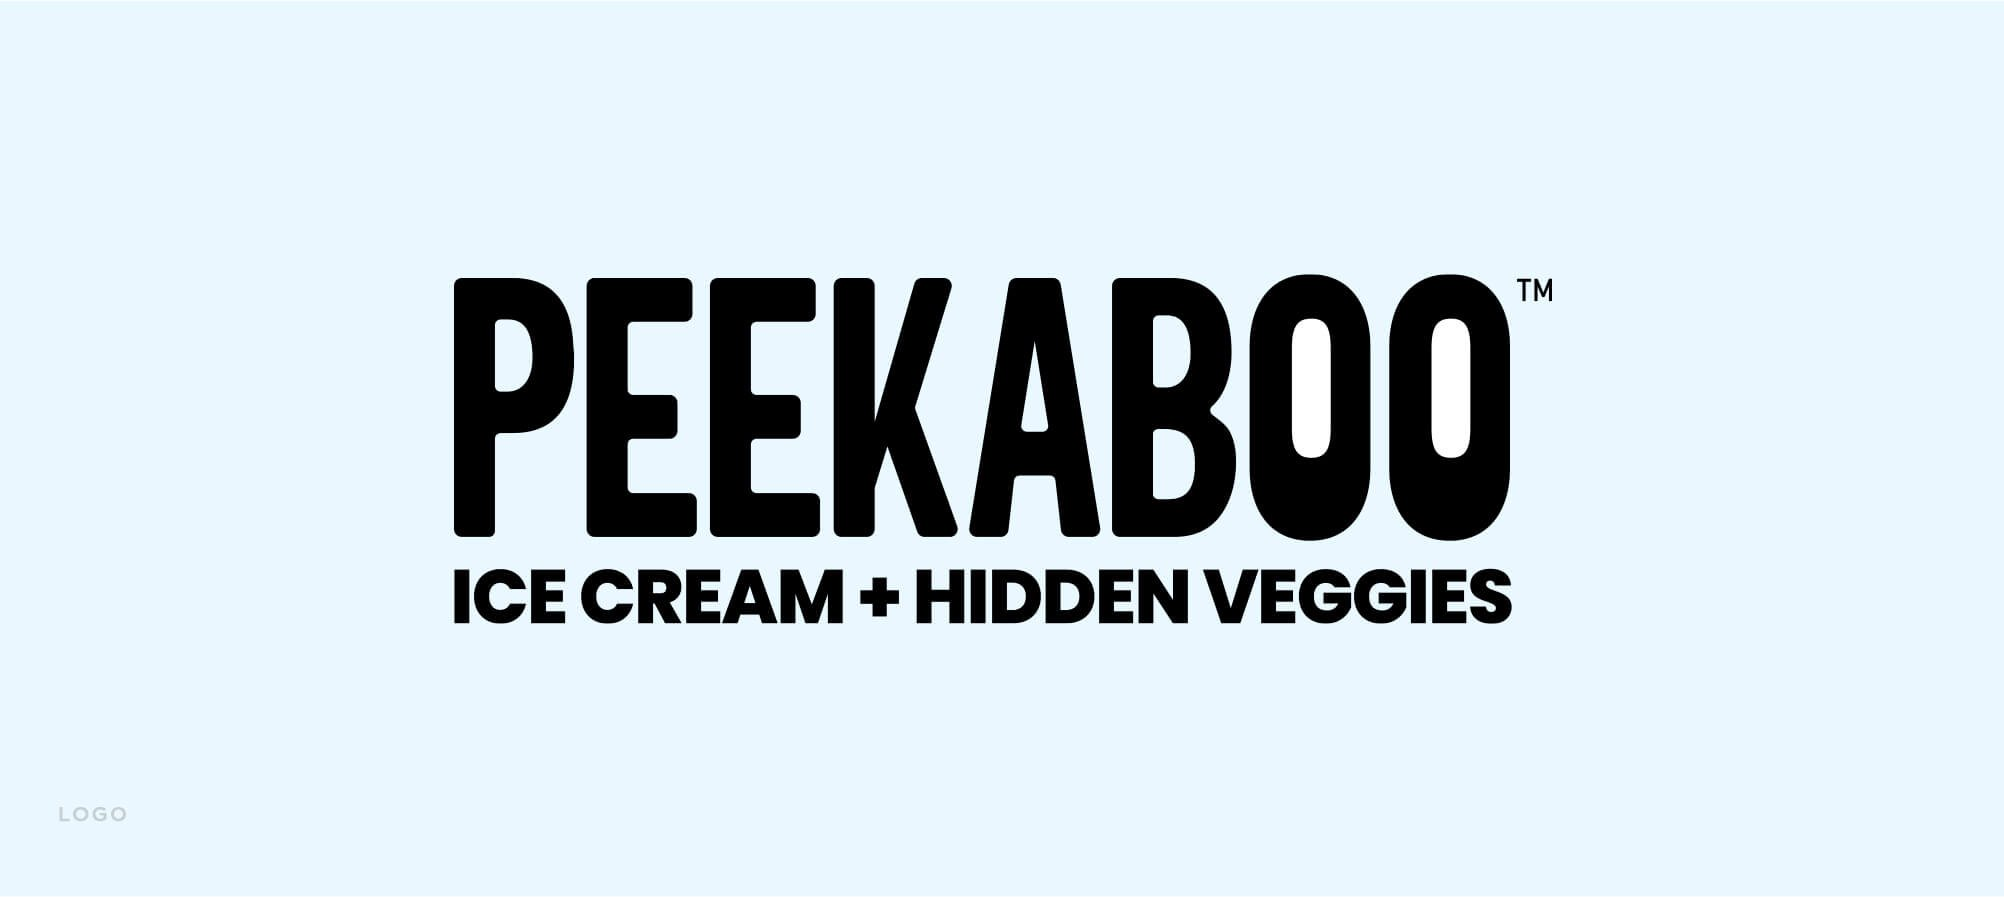 Jacober rebranding of Peekaboo Ice Cream. Photo of new  logo